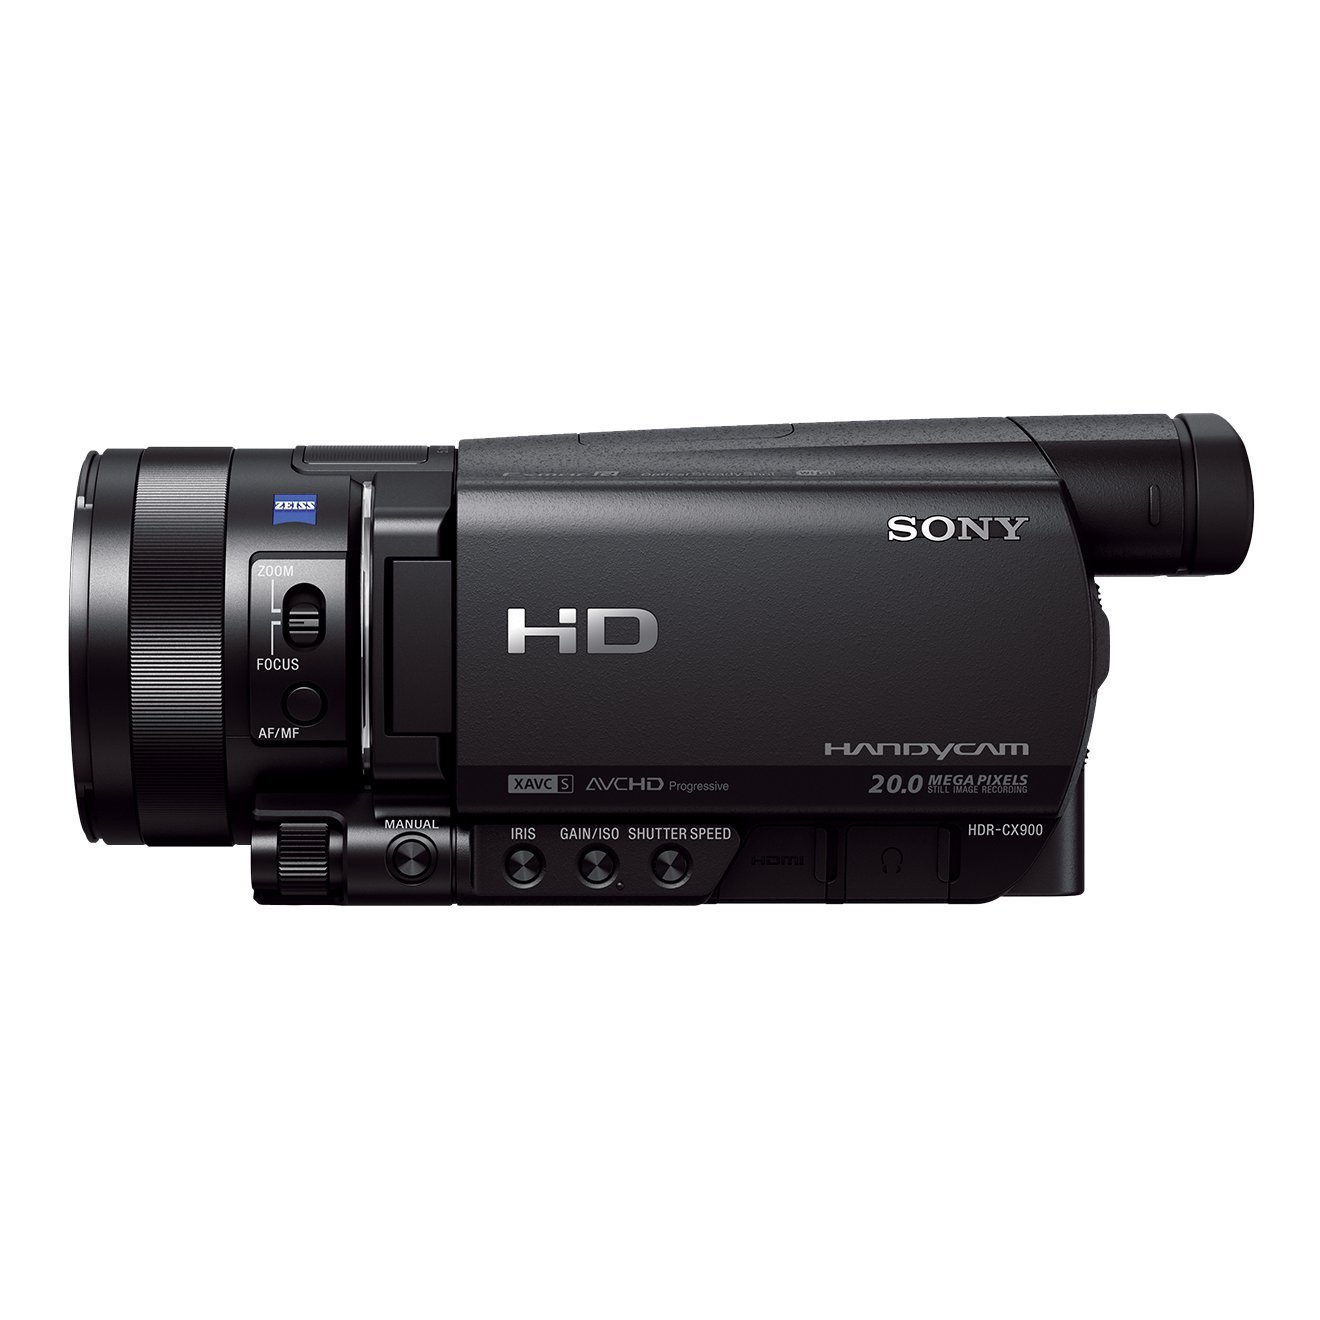 21c7bea73e285e Sony HDR-CX900 High Definition Flash Camcorder 1 Zoll  Amazon.de  Kamera